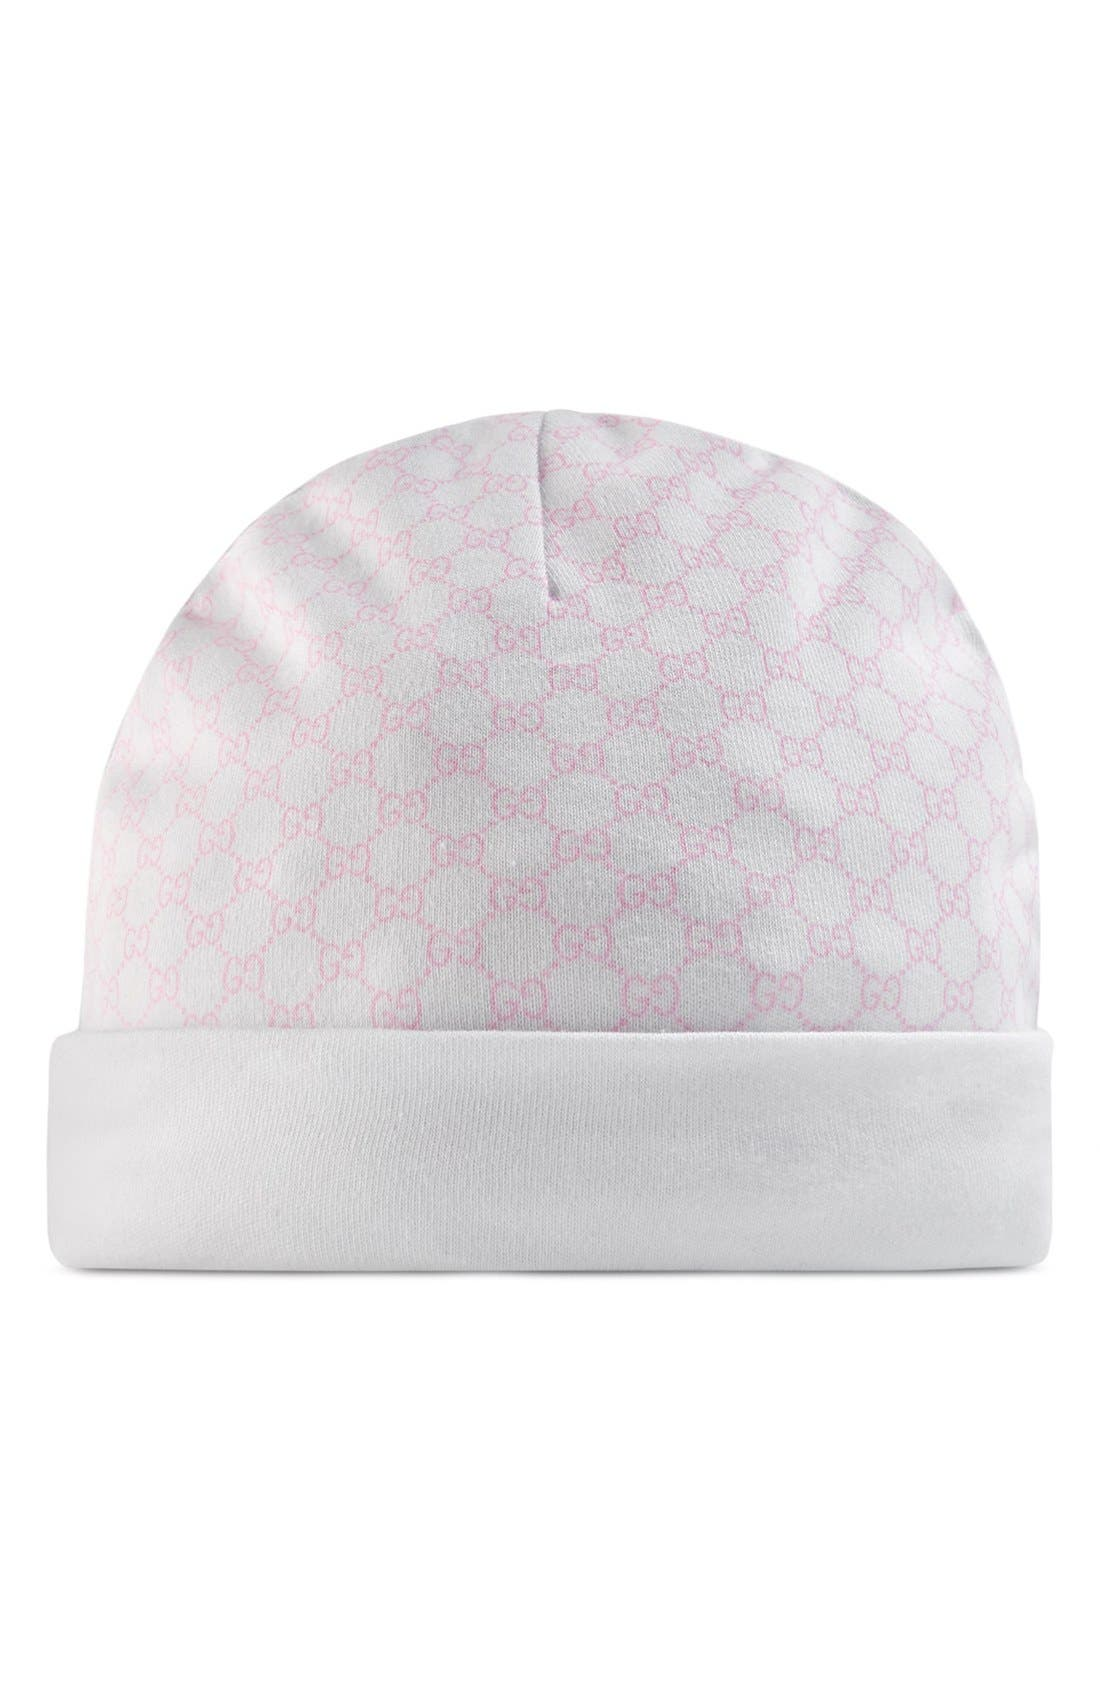 Alternate Image 1 Selected - Gucci Logo Pattern Knit Cap (Baby Girls)